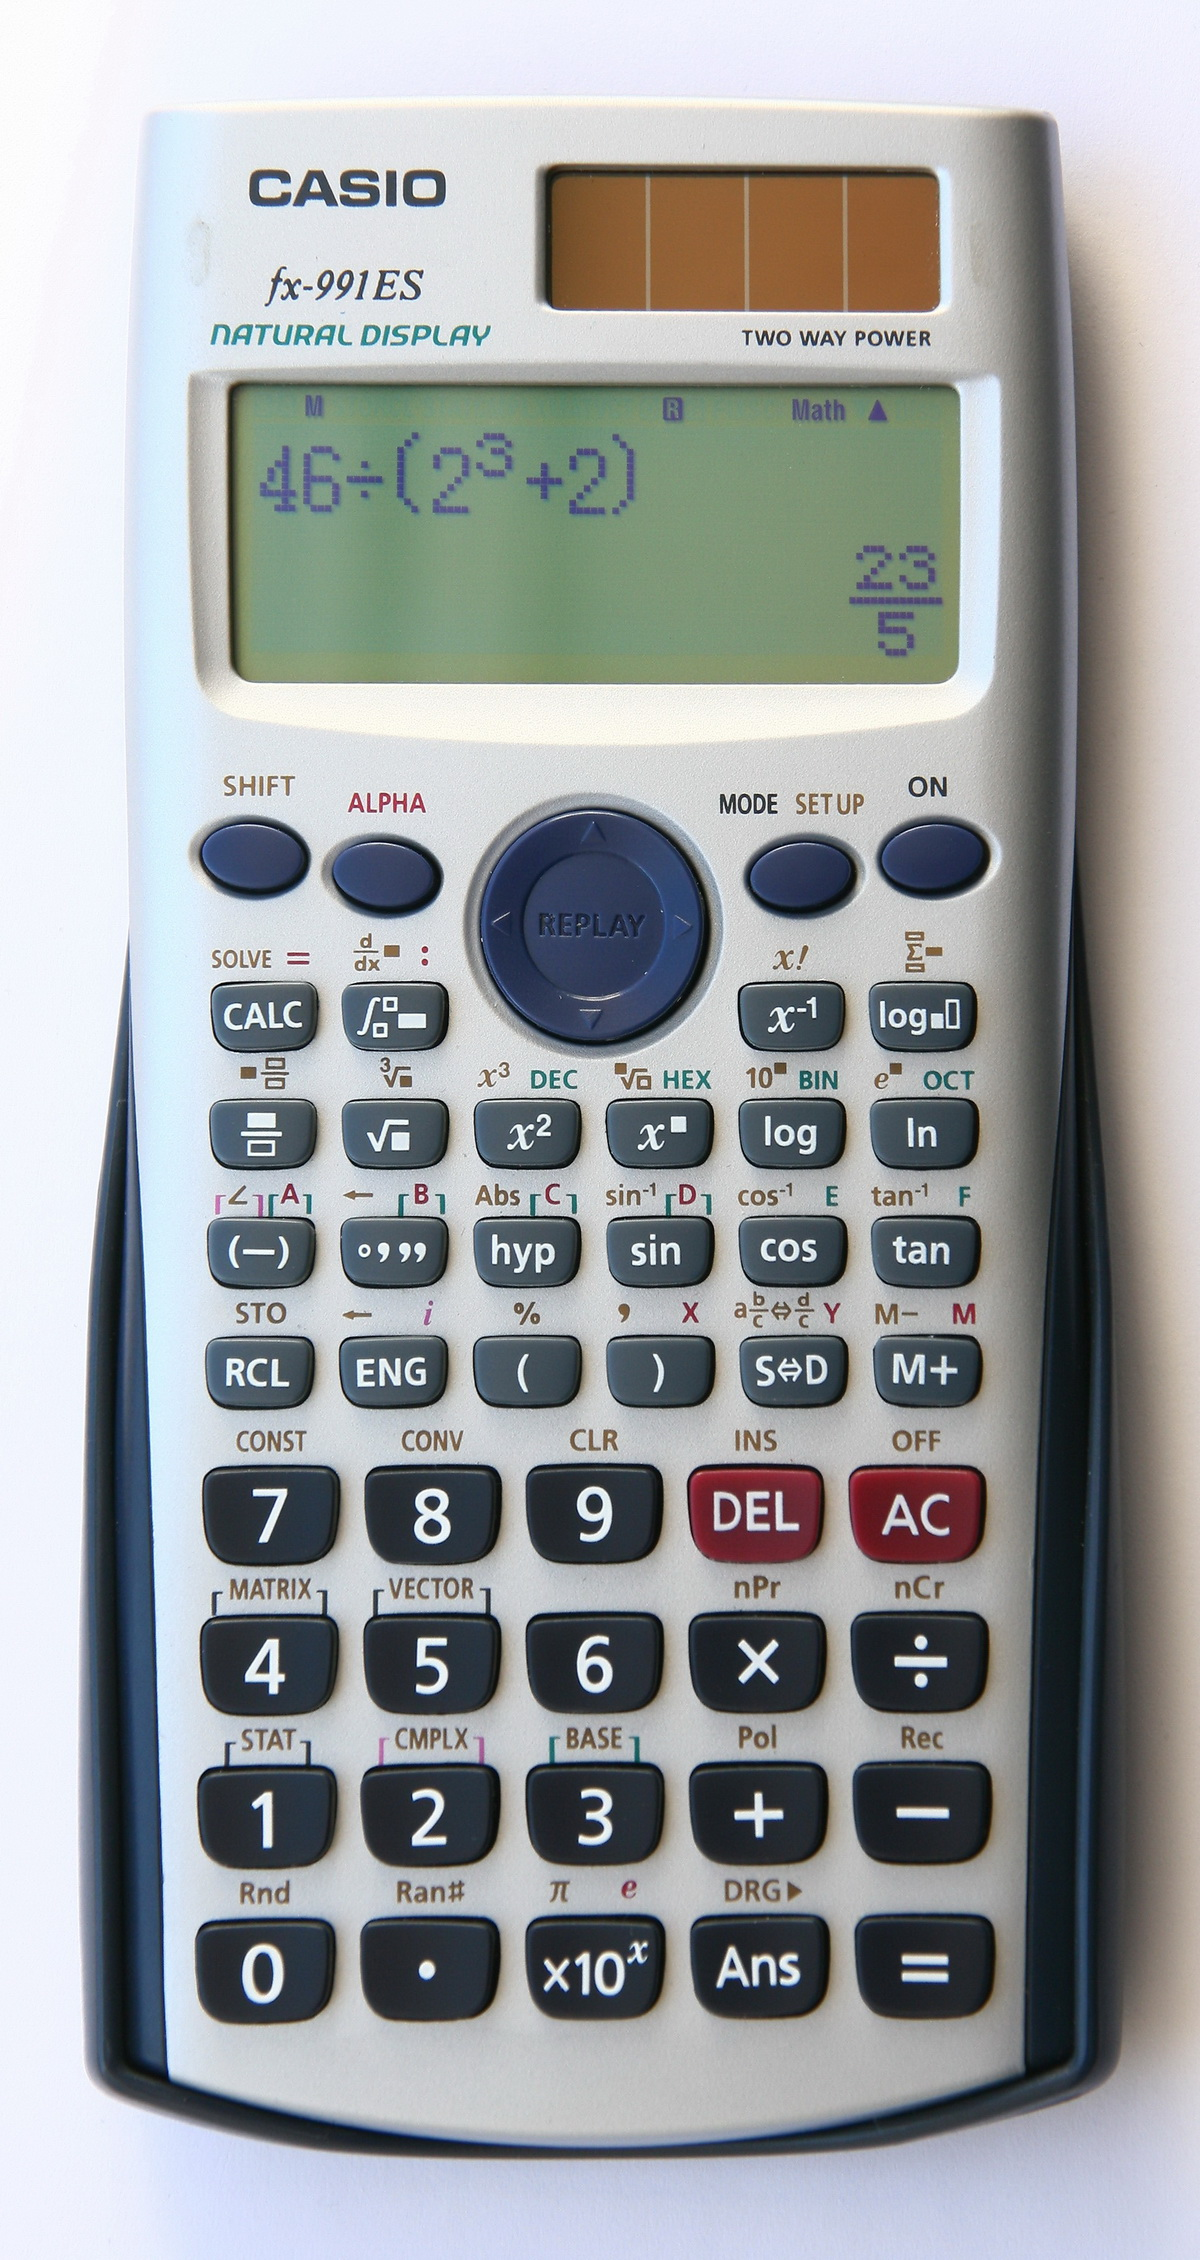 file casio fx 991es calculator new jpg wikimedia commons rh commons wikimedia org fx 991 es plus manual pdf fx 991 es plus casio manual